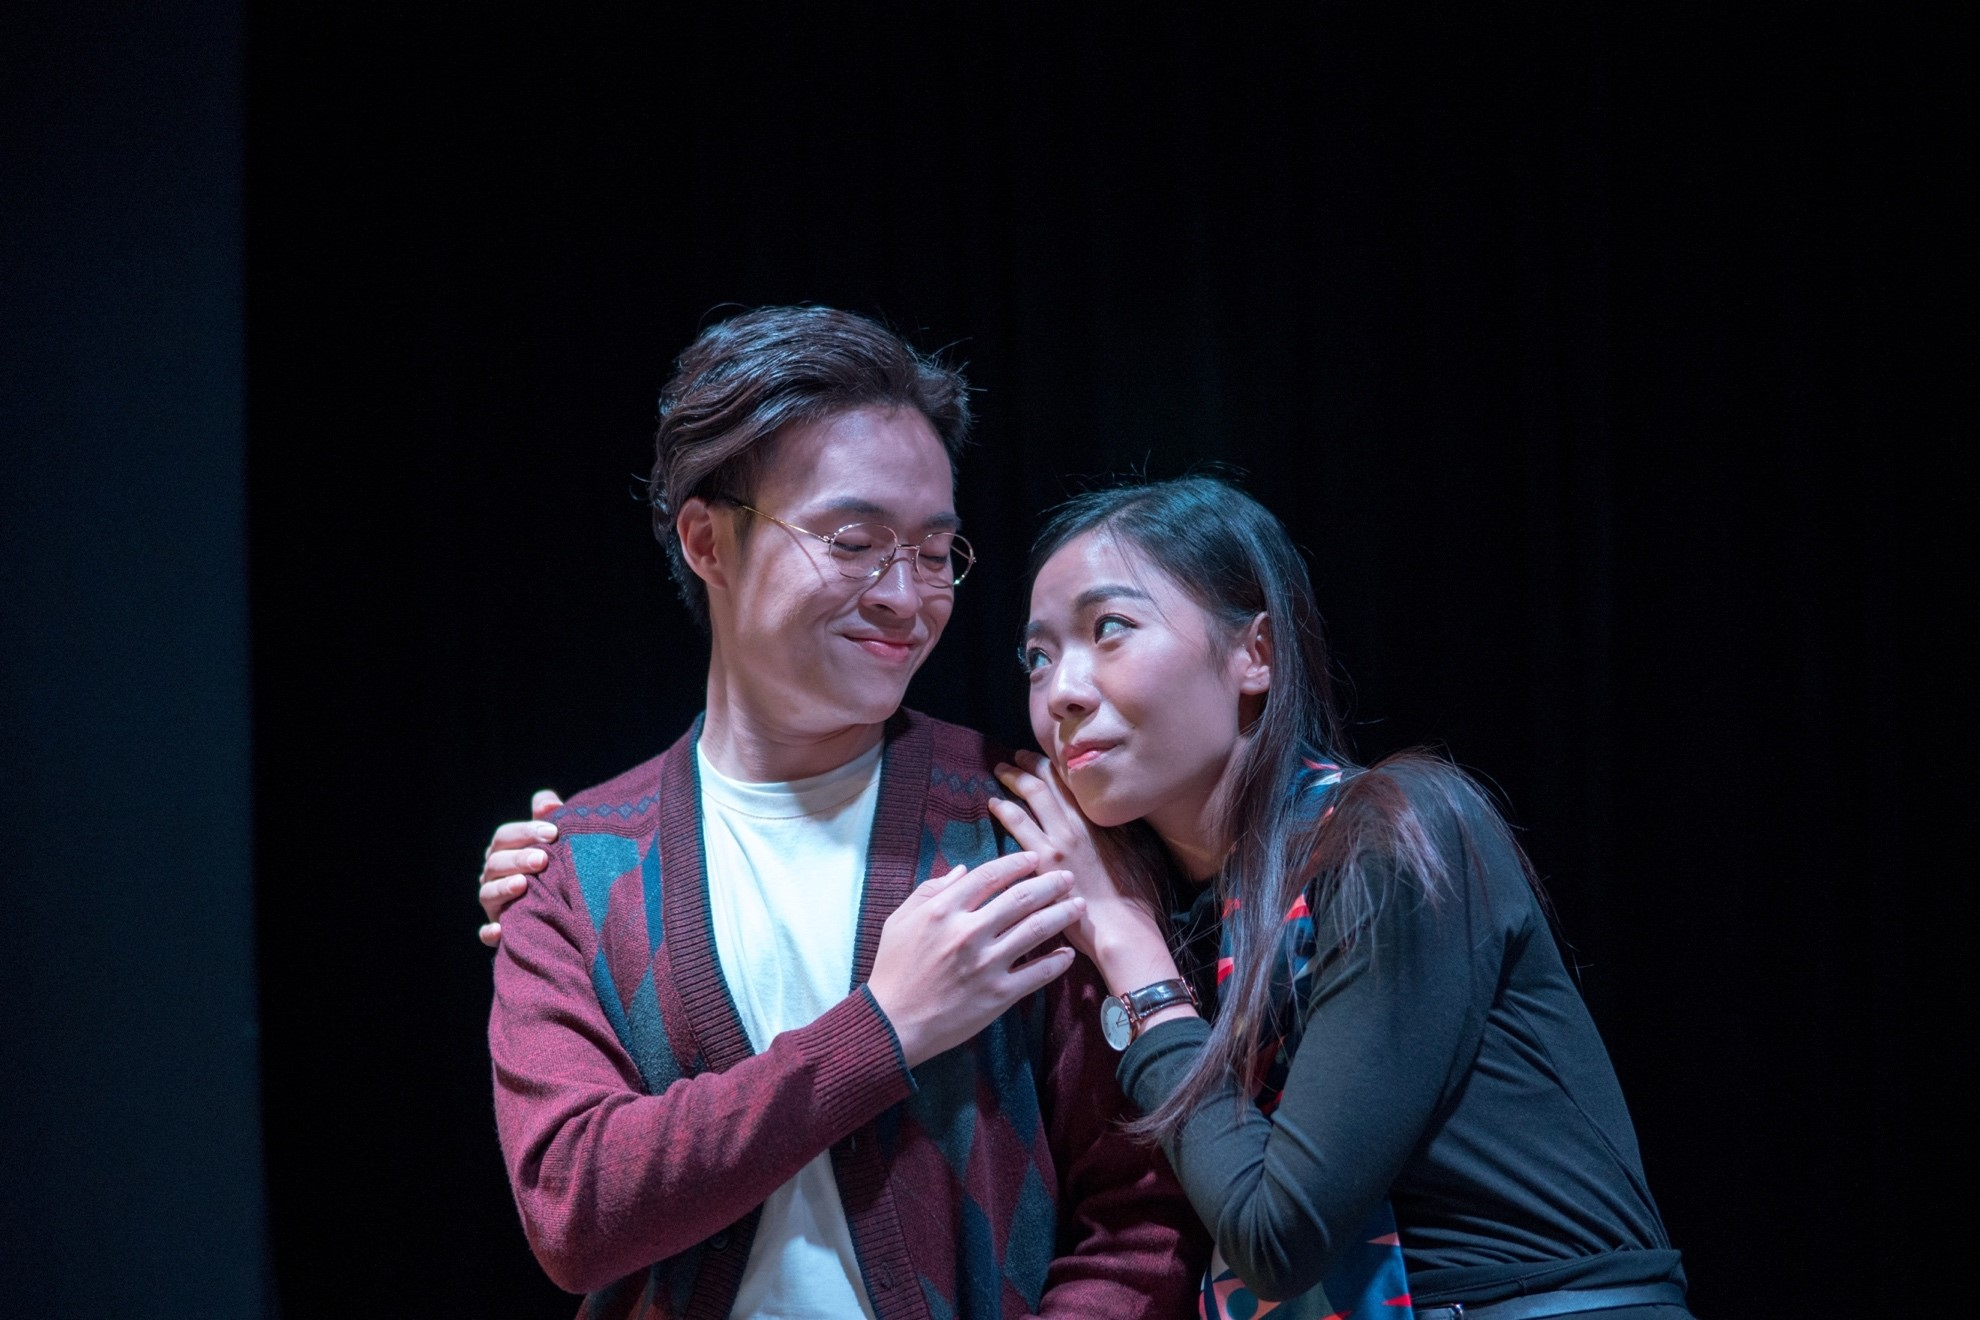 A play created by UM students to celebrate the 70th anniversary of PRC and the 20th anniversary of the Macao SAR